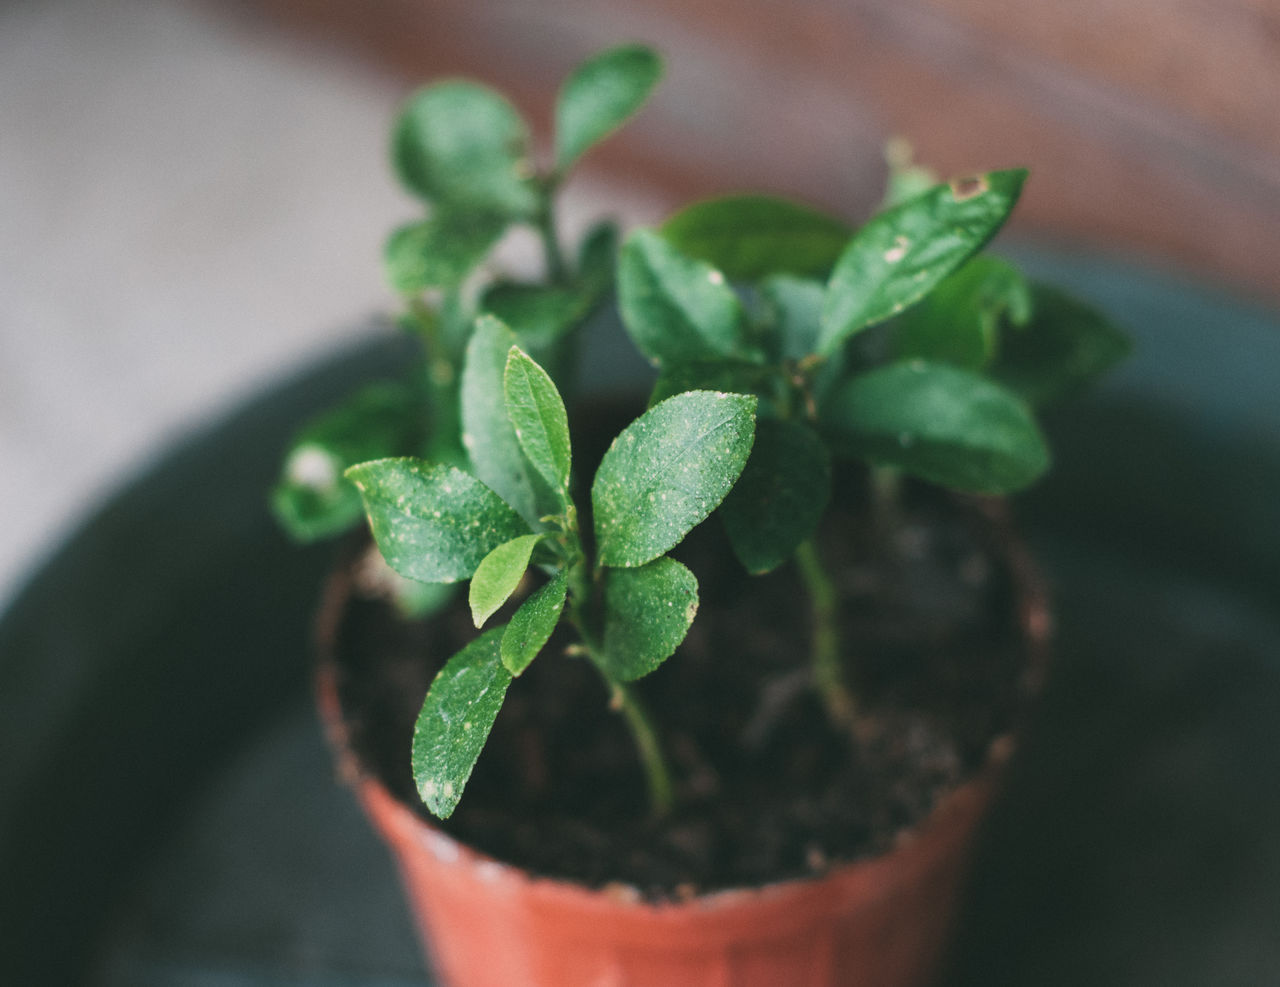 green color, leaf, plant part, potted plant, plant, growth, close-up, nature, selective focus, beauty in nature, no people, outdoors, freshness, seedling, botany, day, beginnings, focus on foreground, high angle view, herb, houseplant, flower pot, small